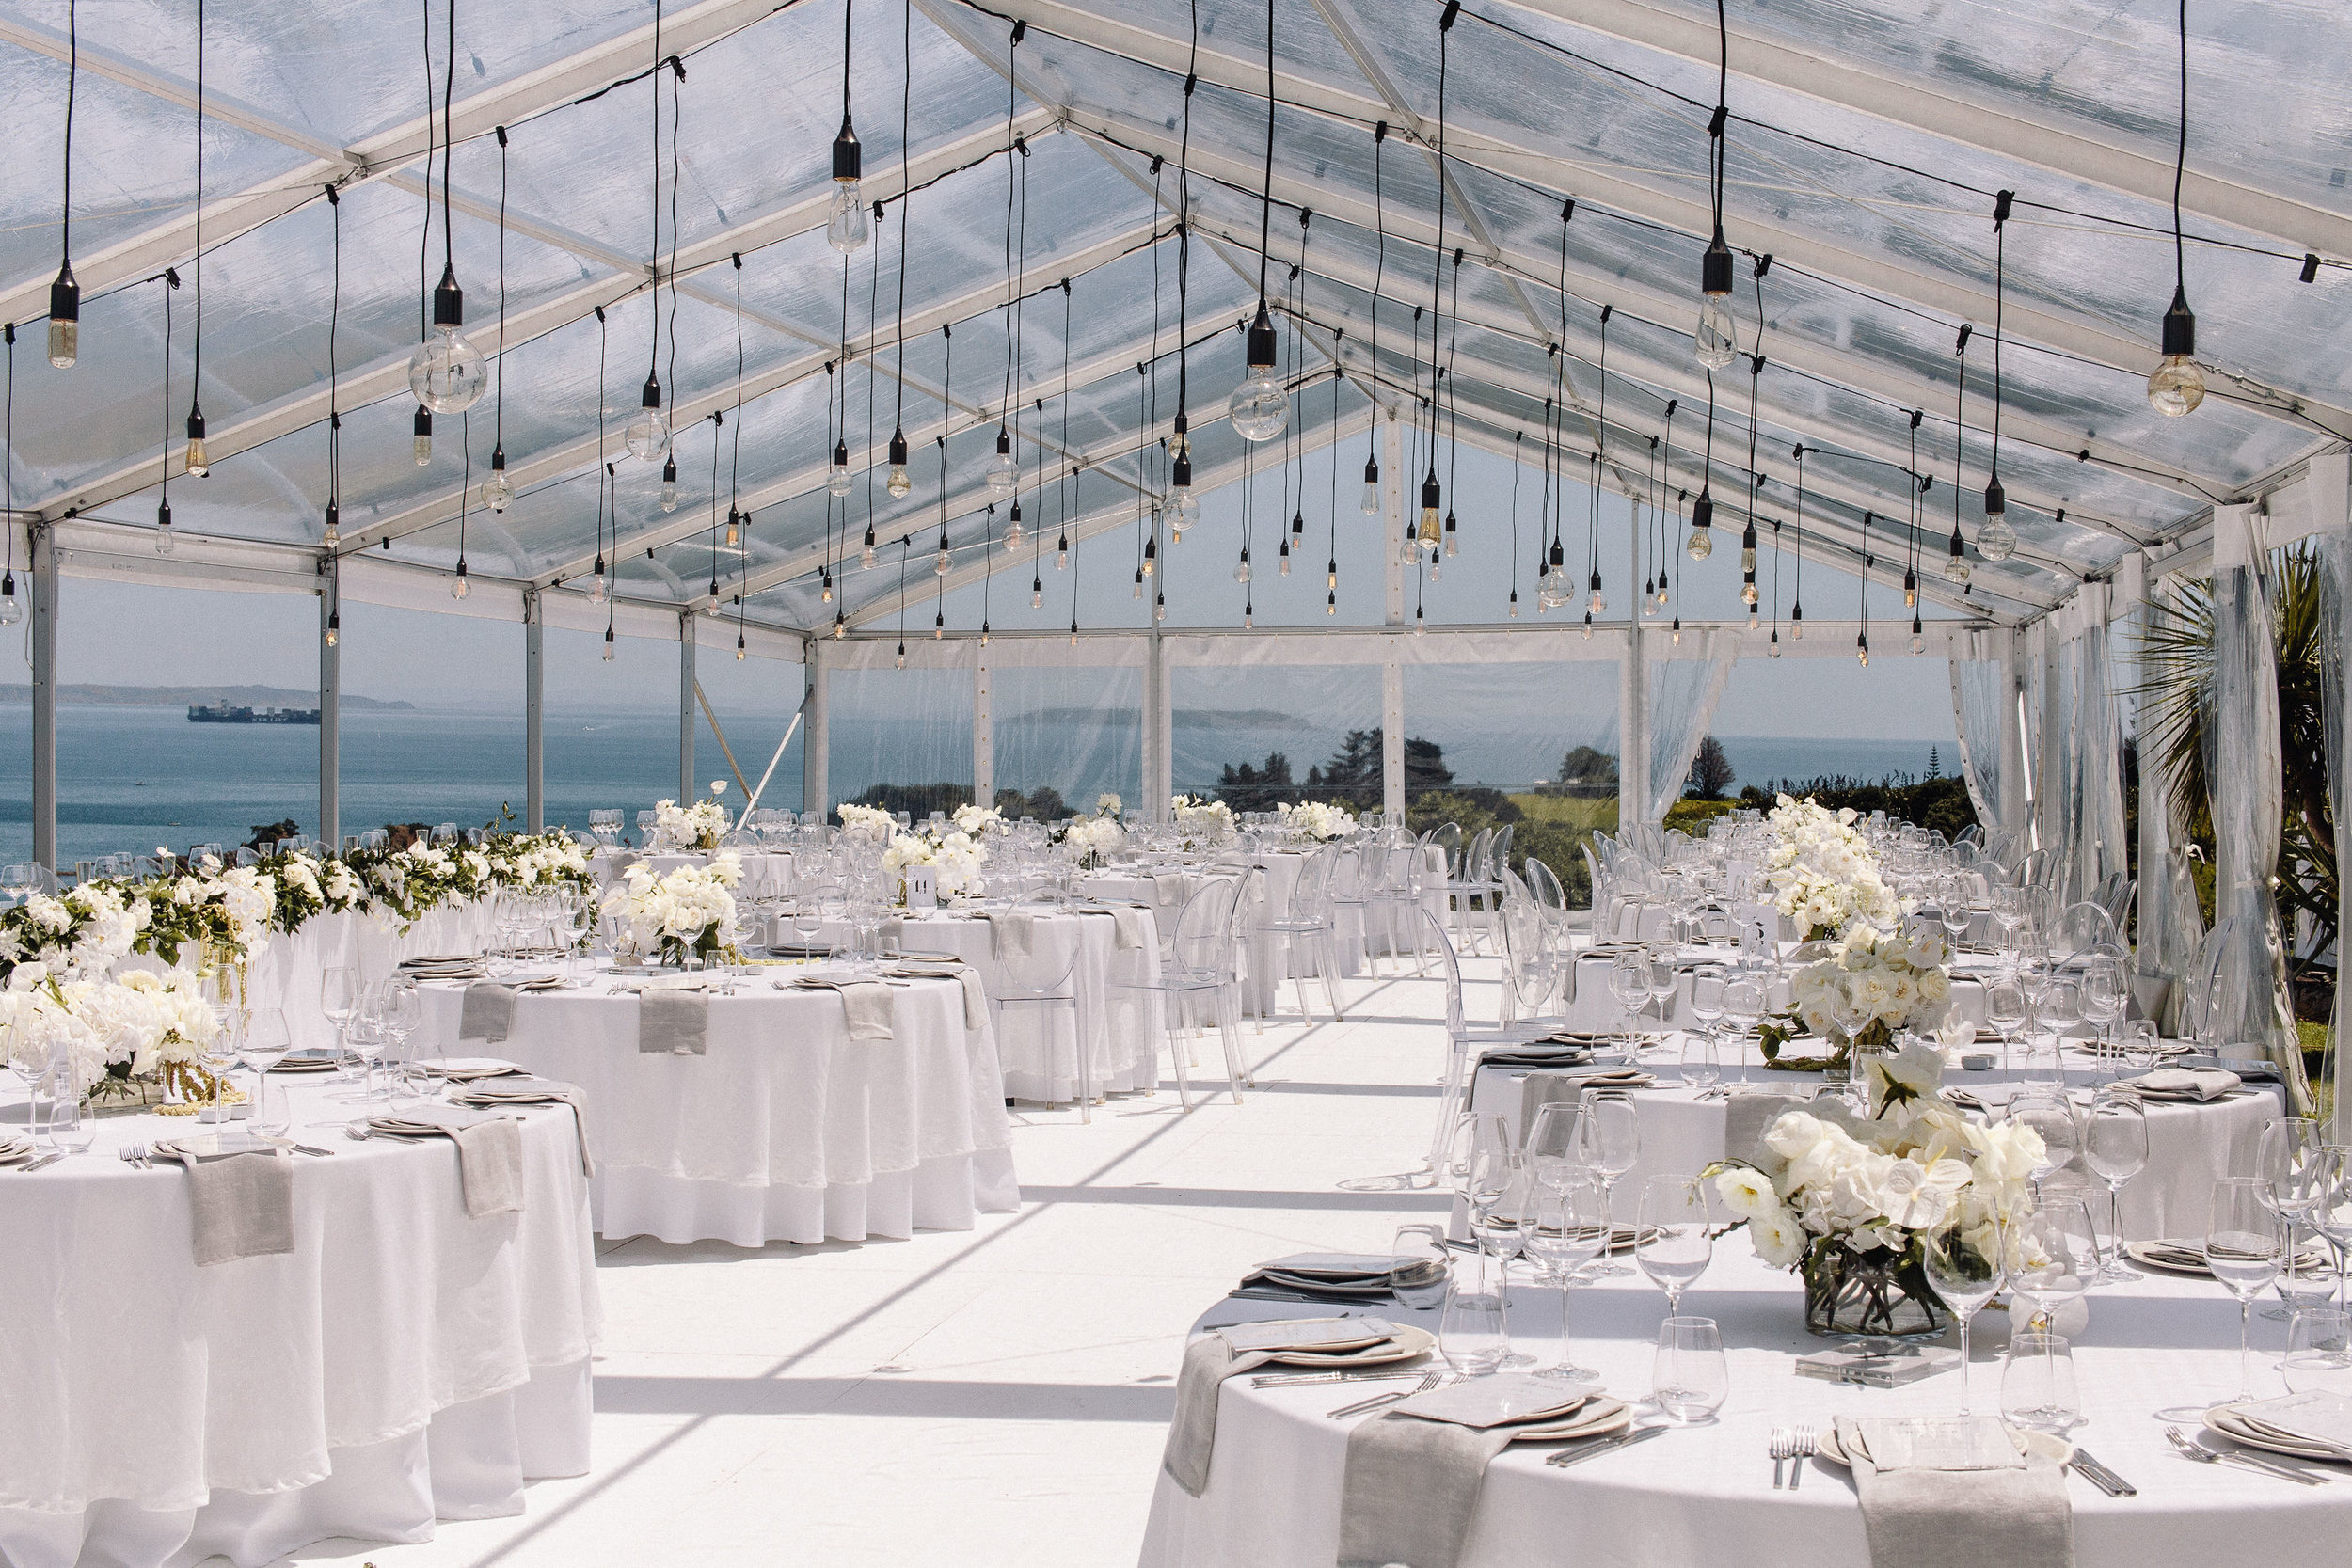 Sky Napkins & Snow Table Cloths